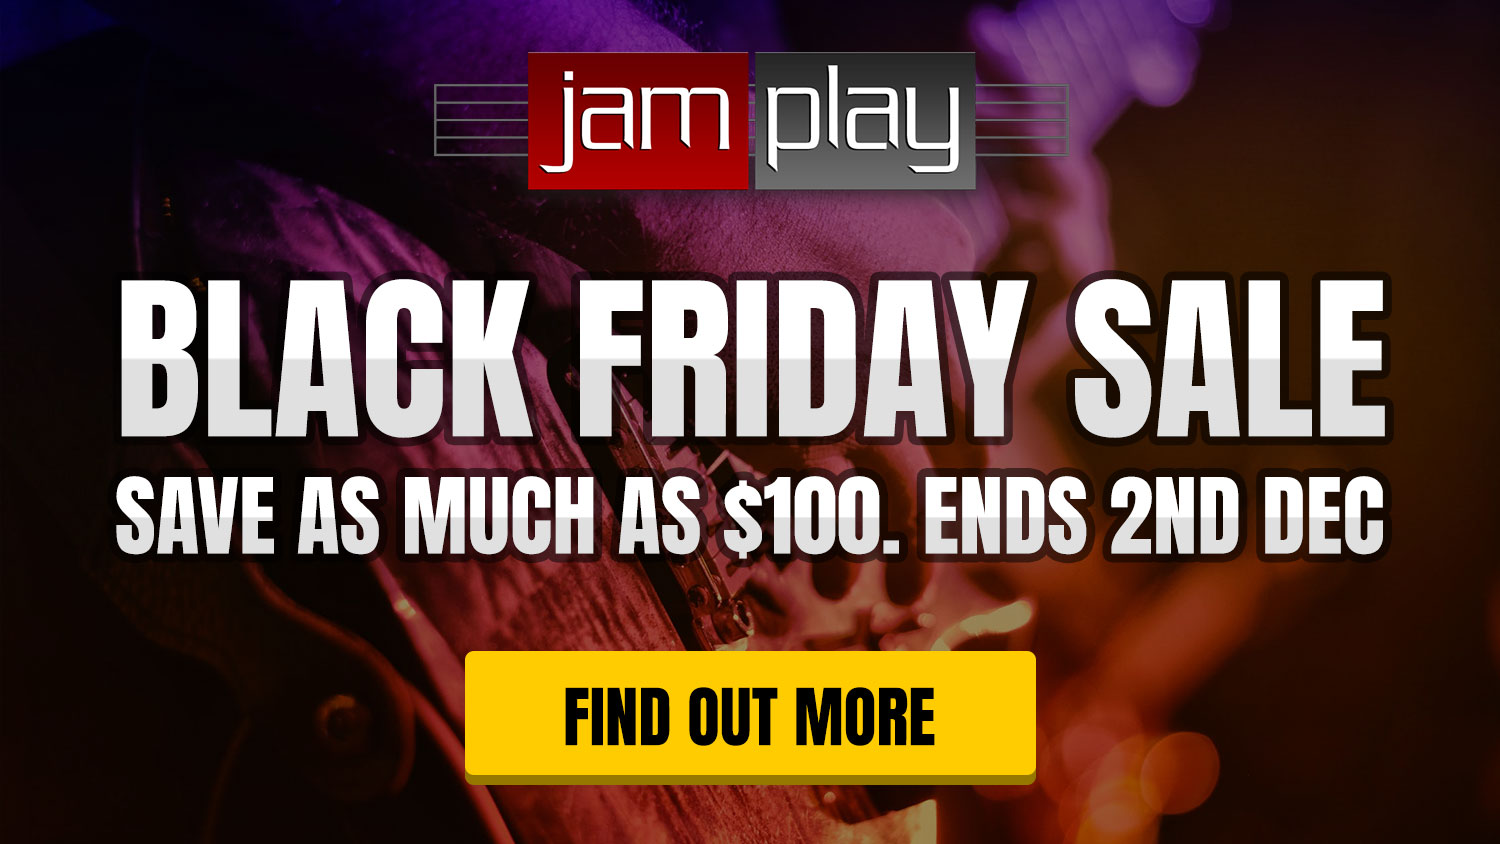 Black Friday Sale! Save up to $100! Ends 2nd Dec 2019